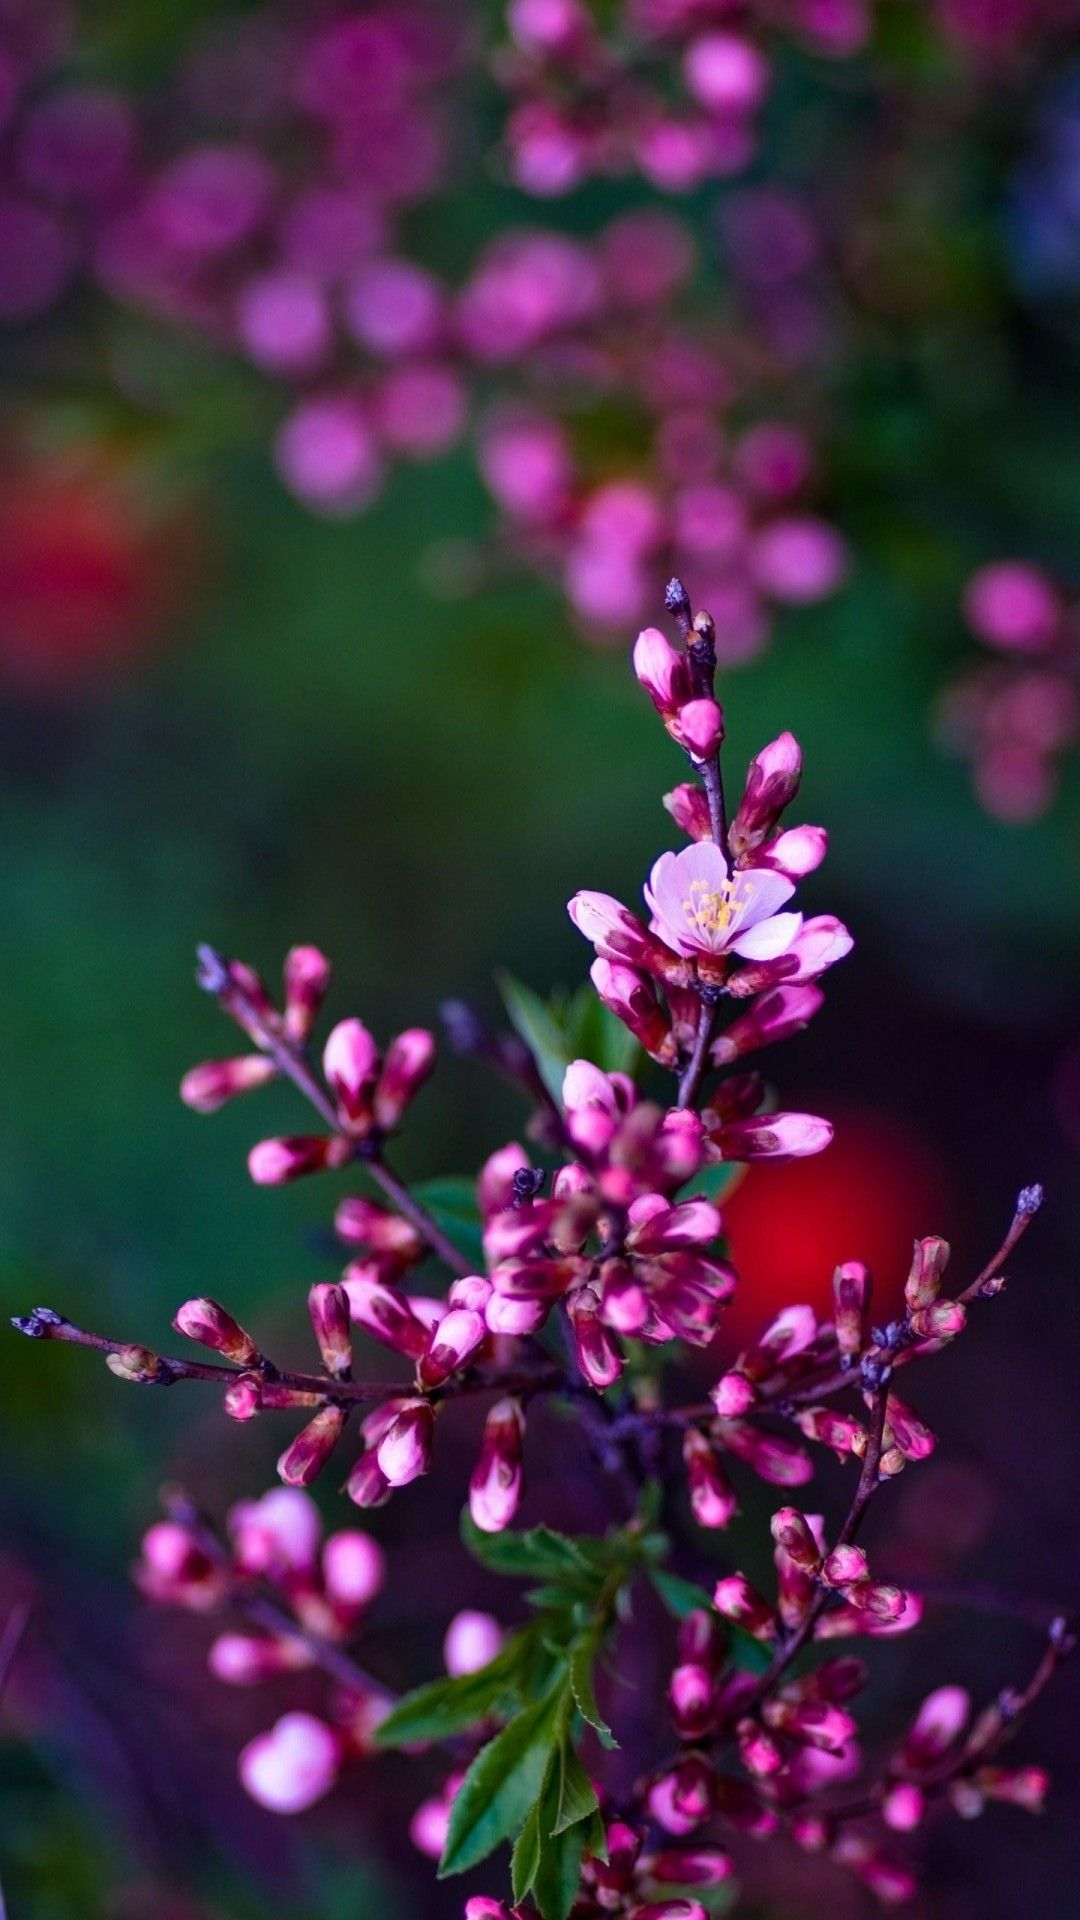 Cute Flower HD Wallpapers For Mobile Hd wallpapers for